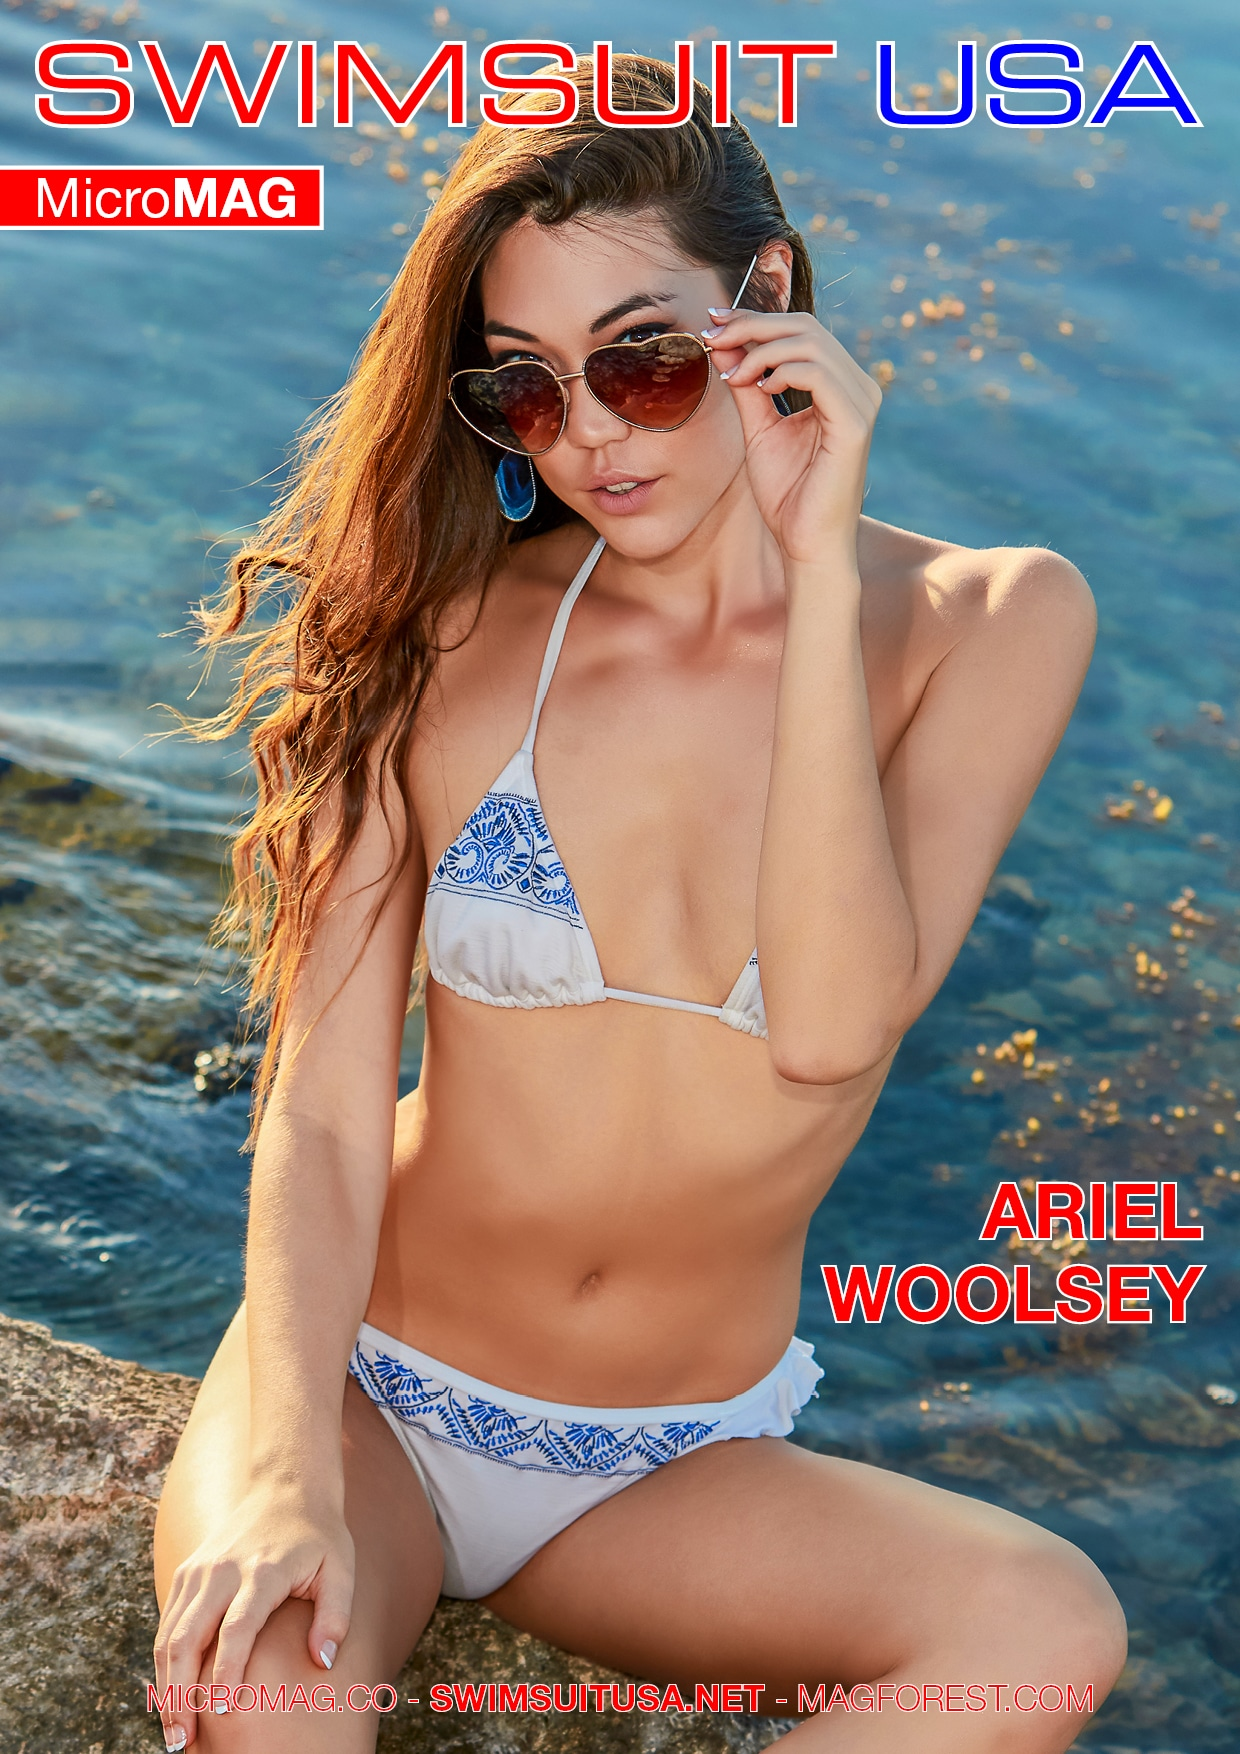 Swimsuit Usa Micromag – Ariel Woolsey – Issue 1